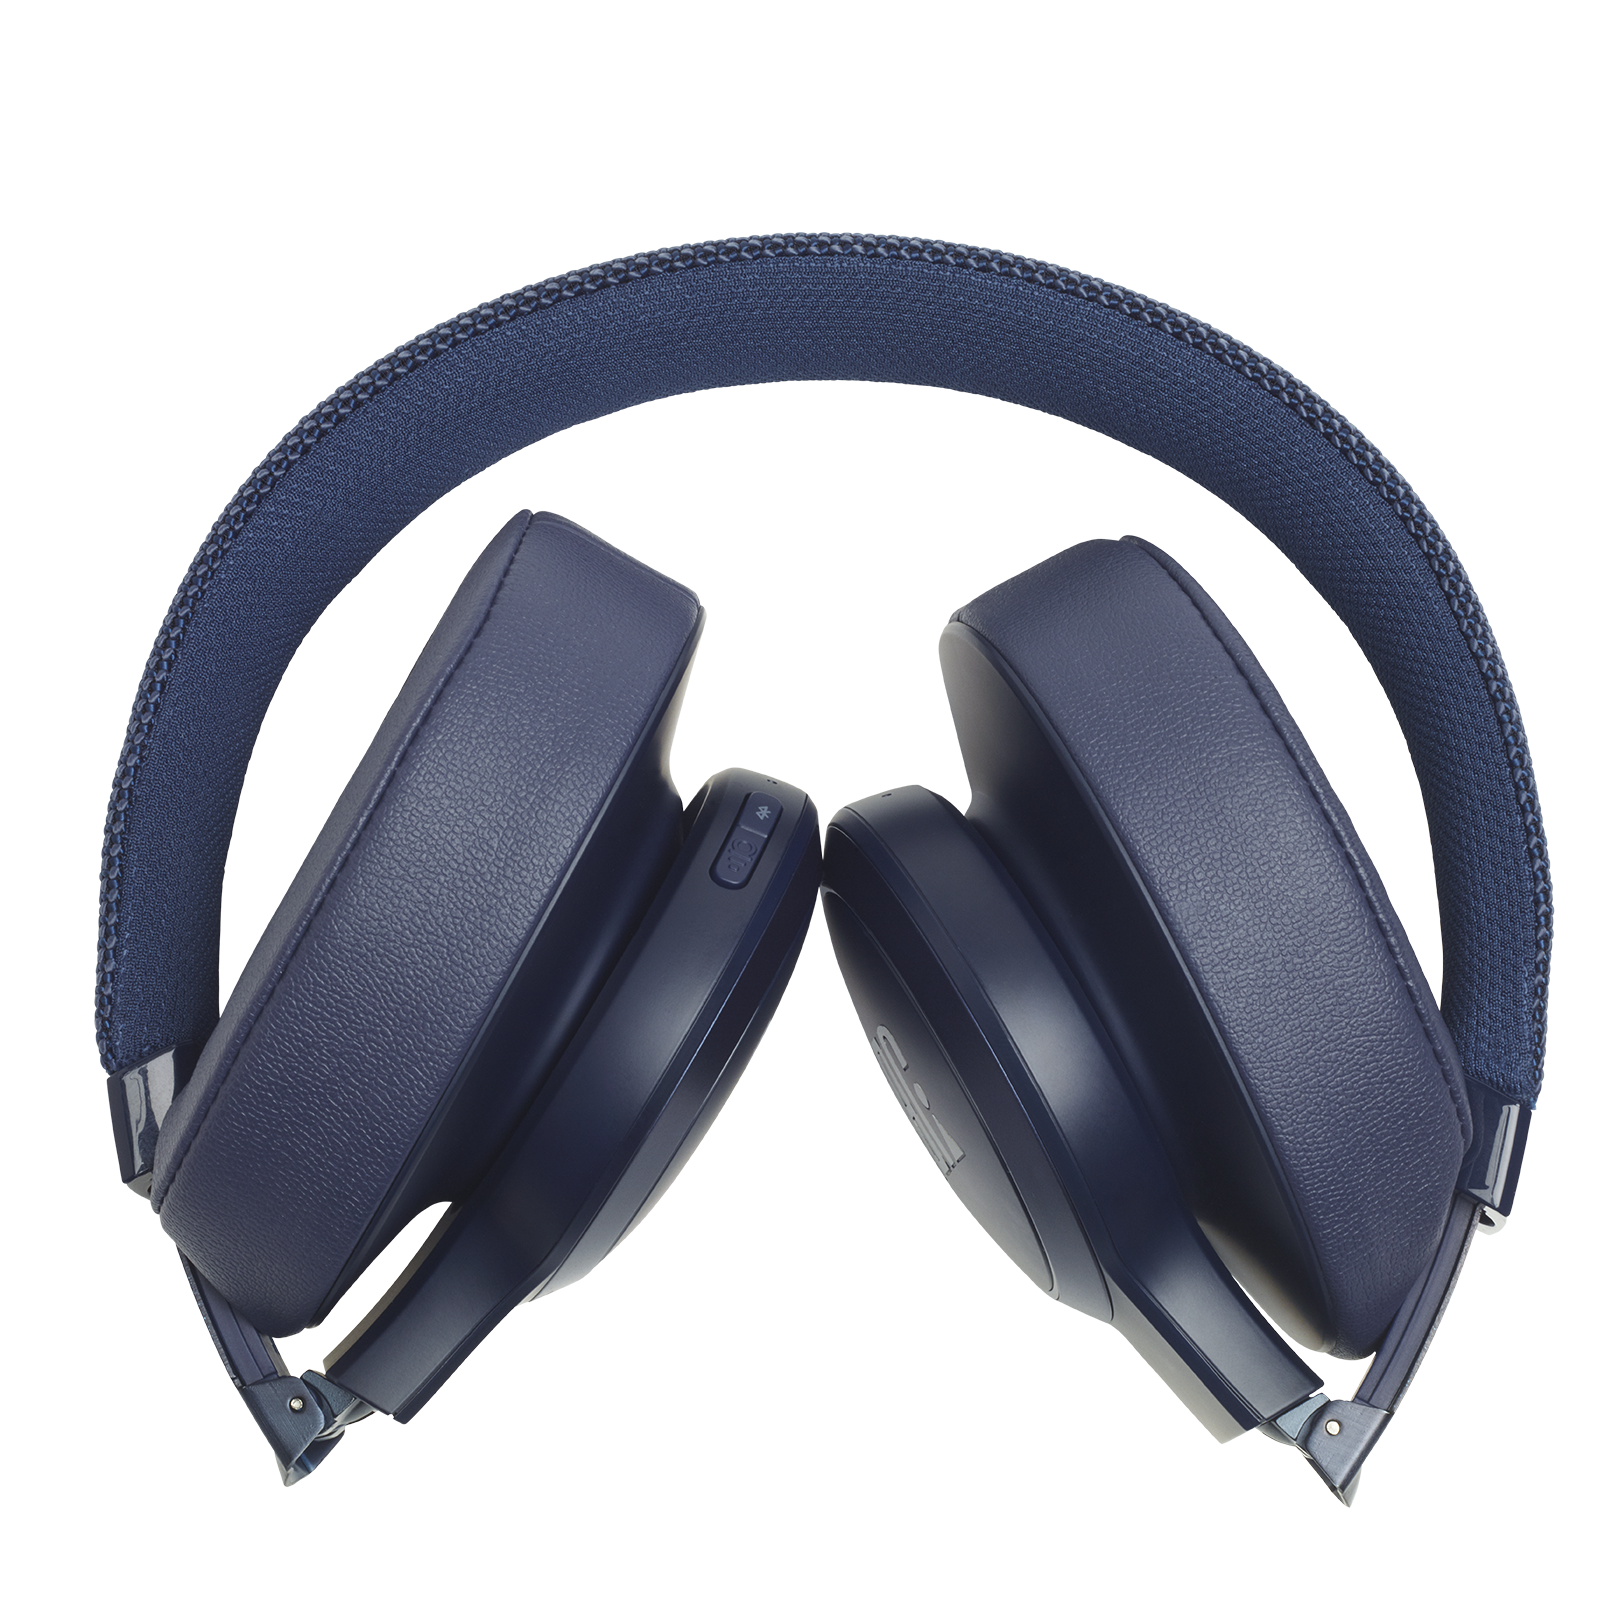 JBL LIVE 500BT - Blue - Your Sound, Unplugged - Detailshot 2